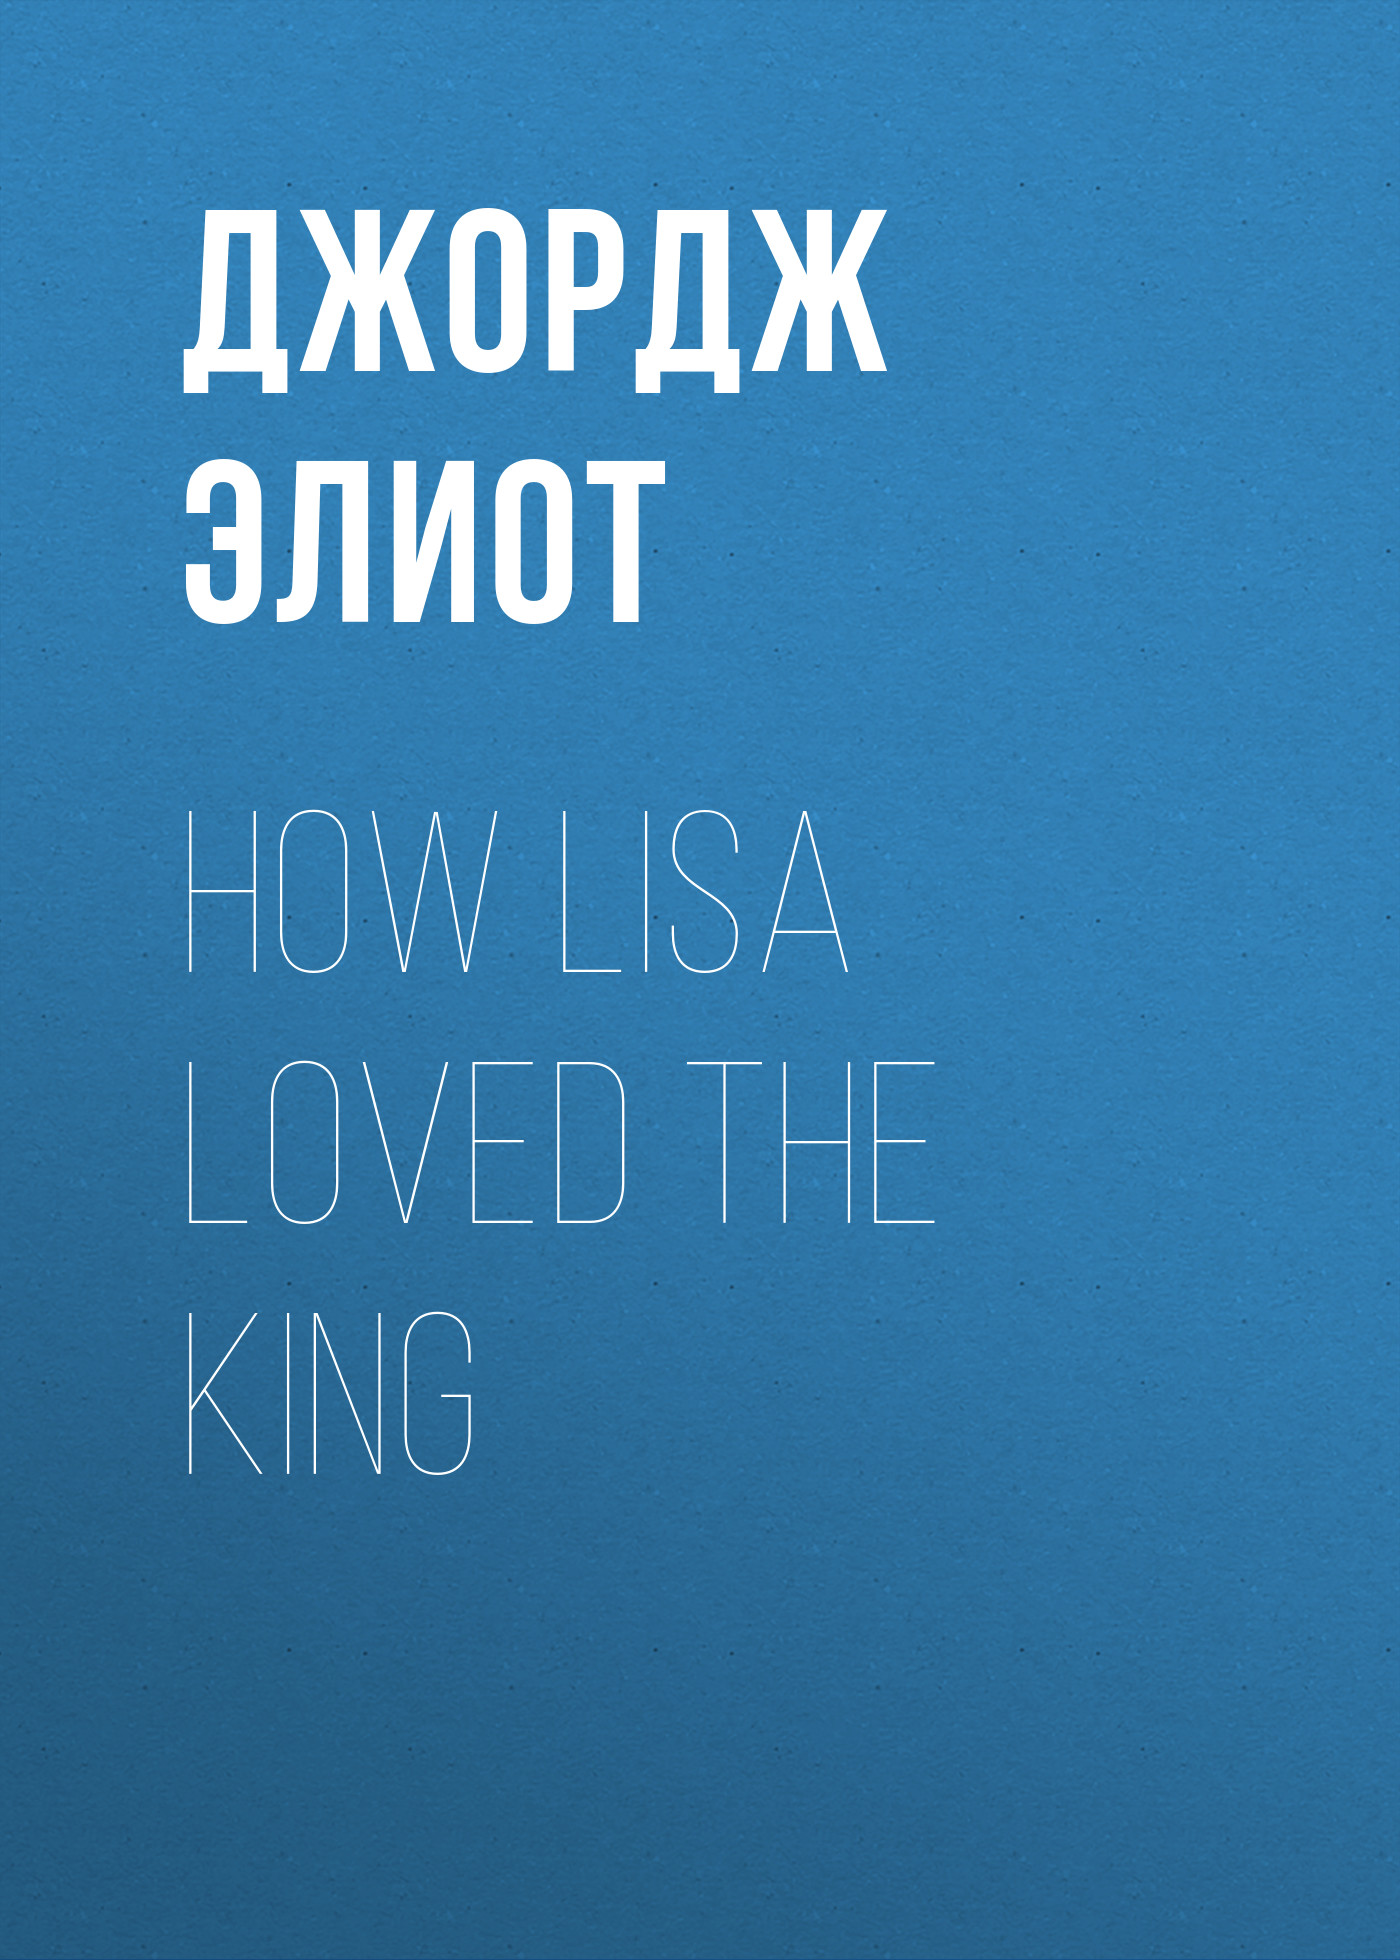 лучшая цена Джордж Элиот How Lisa Loved the King